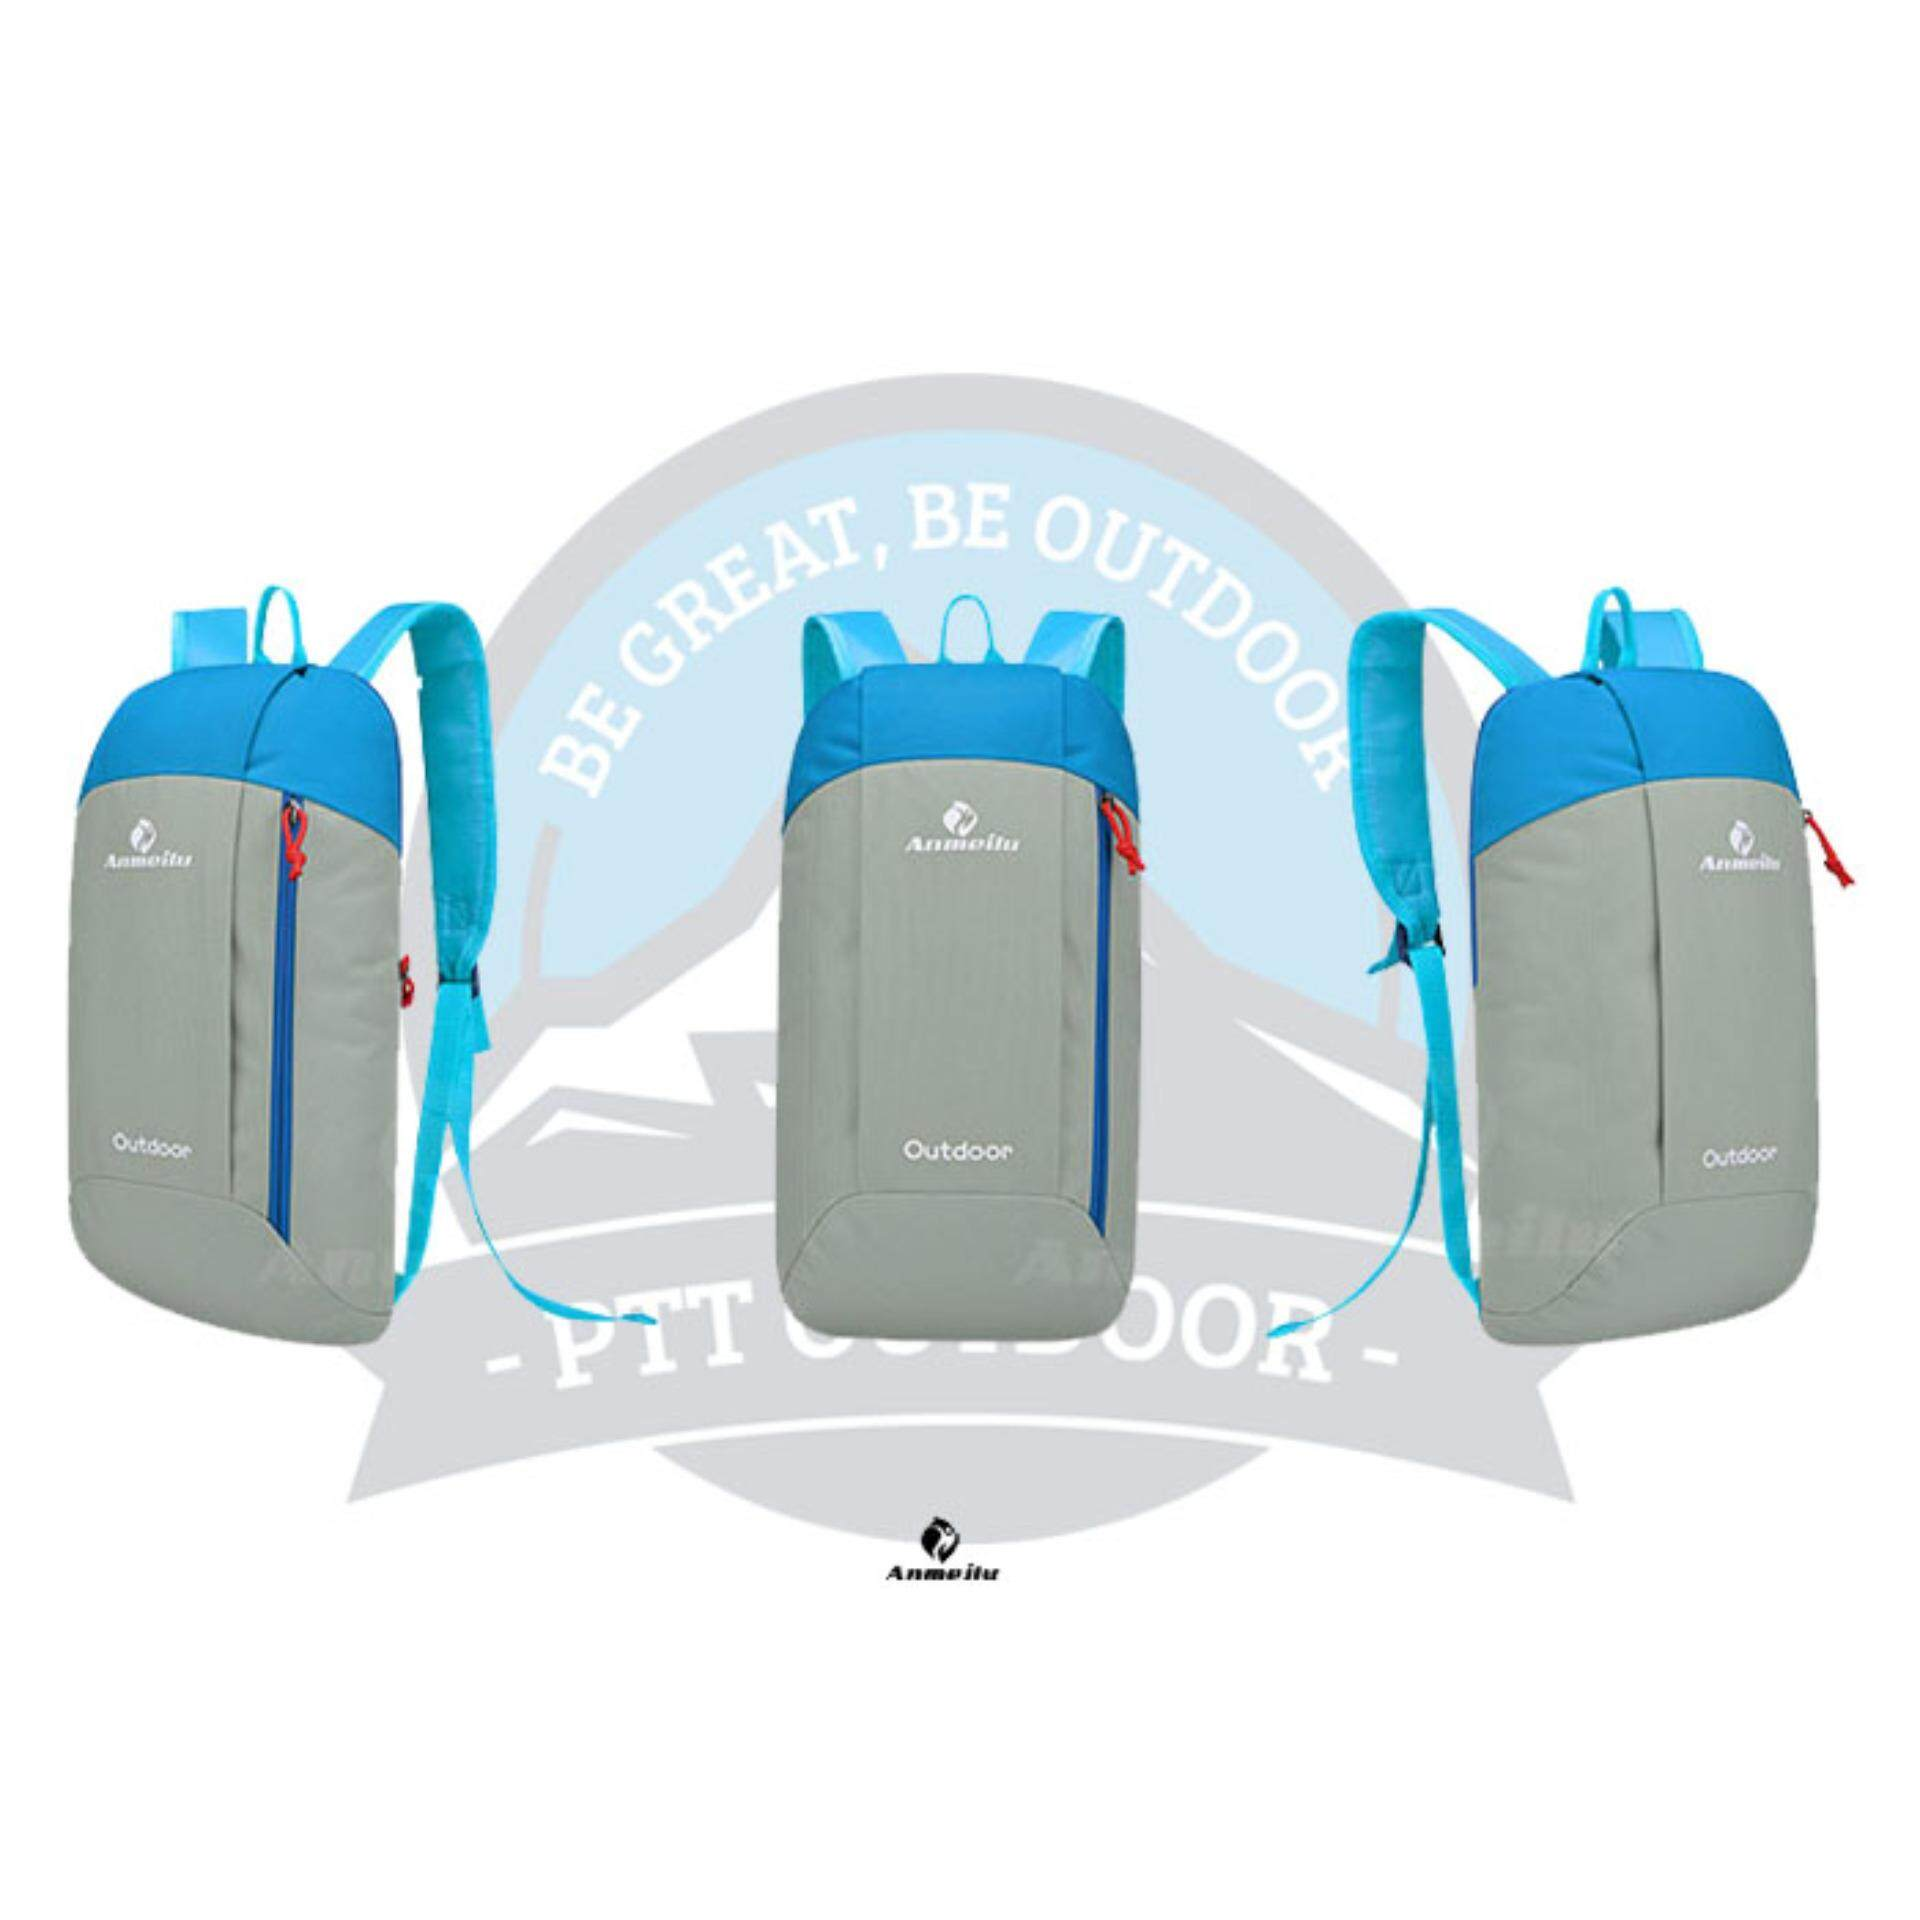 [READY STOCK] ANMEILU Portable Outdoor 10L Bagpack - GREY